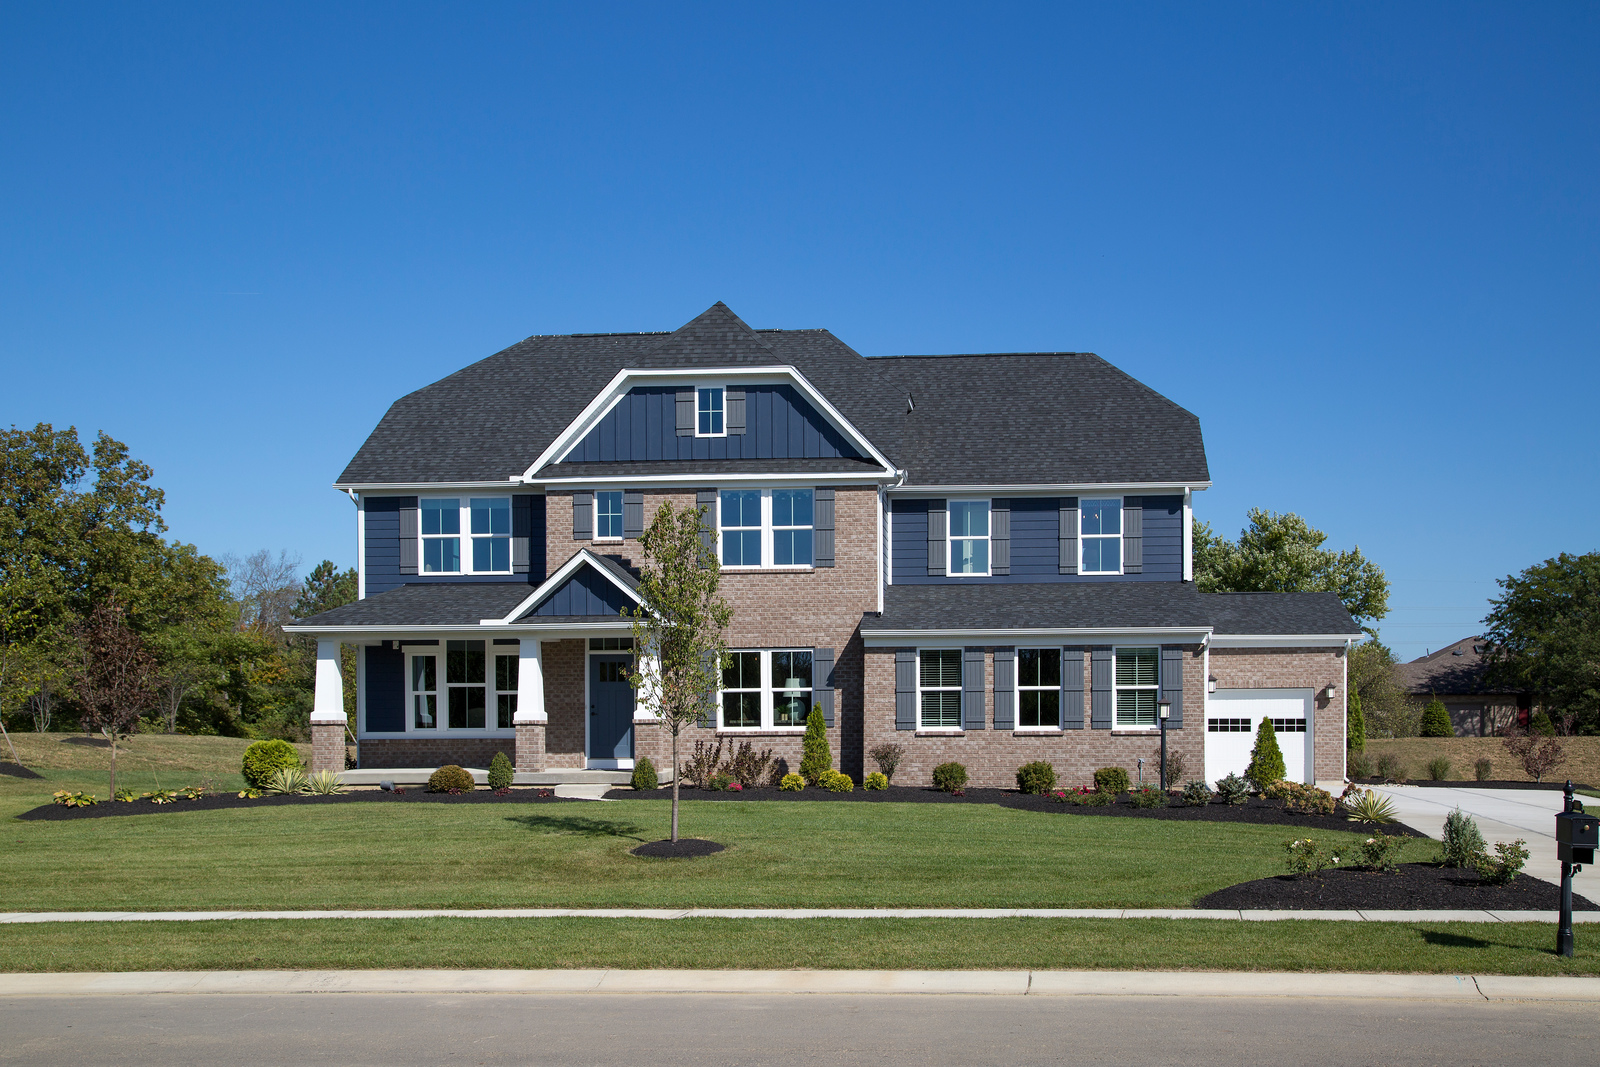 New Homes For Sale At Grantham In Harrisburg Nc Within The Hickory